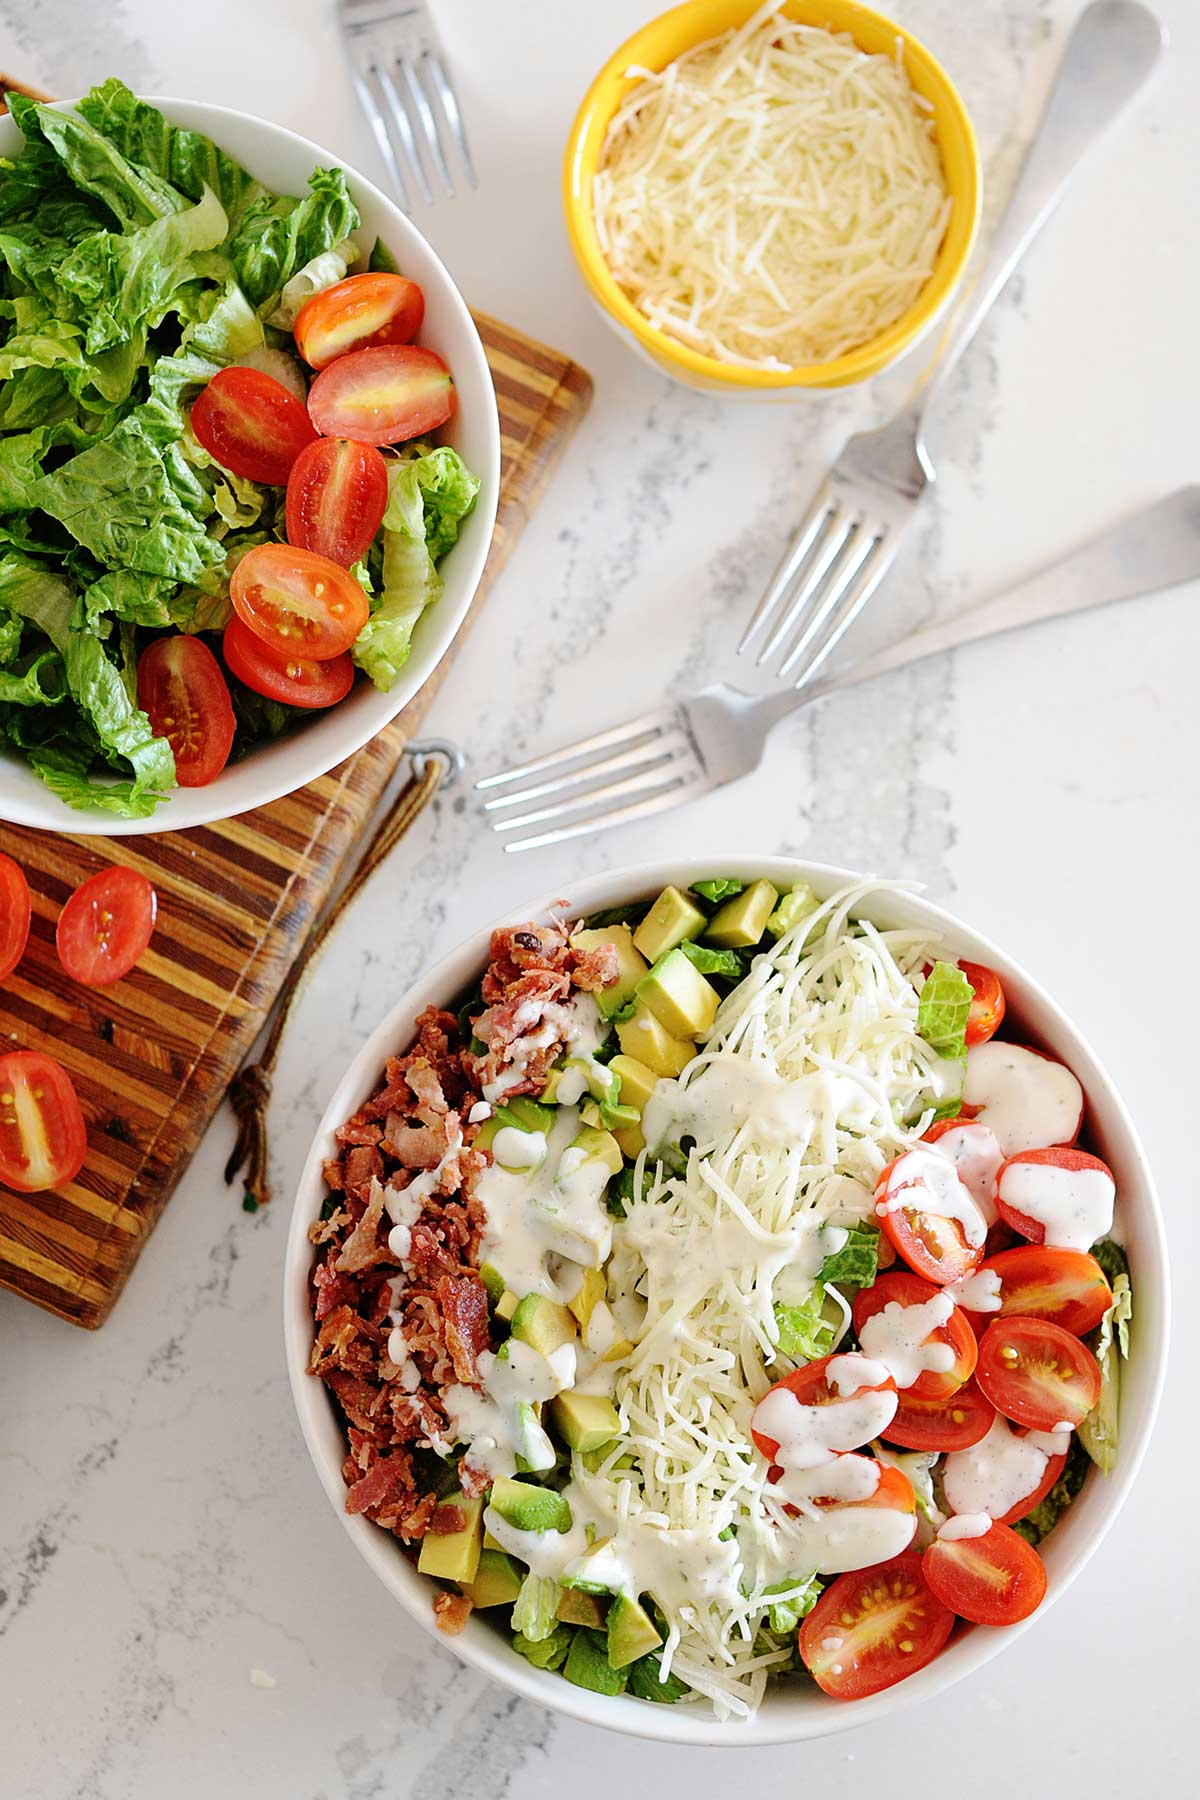 blt salad in a bowl with individual ingredients in other bowls to the side